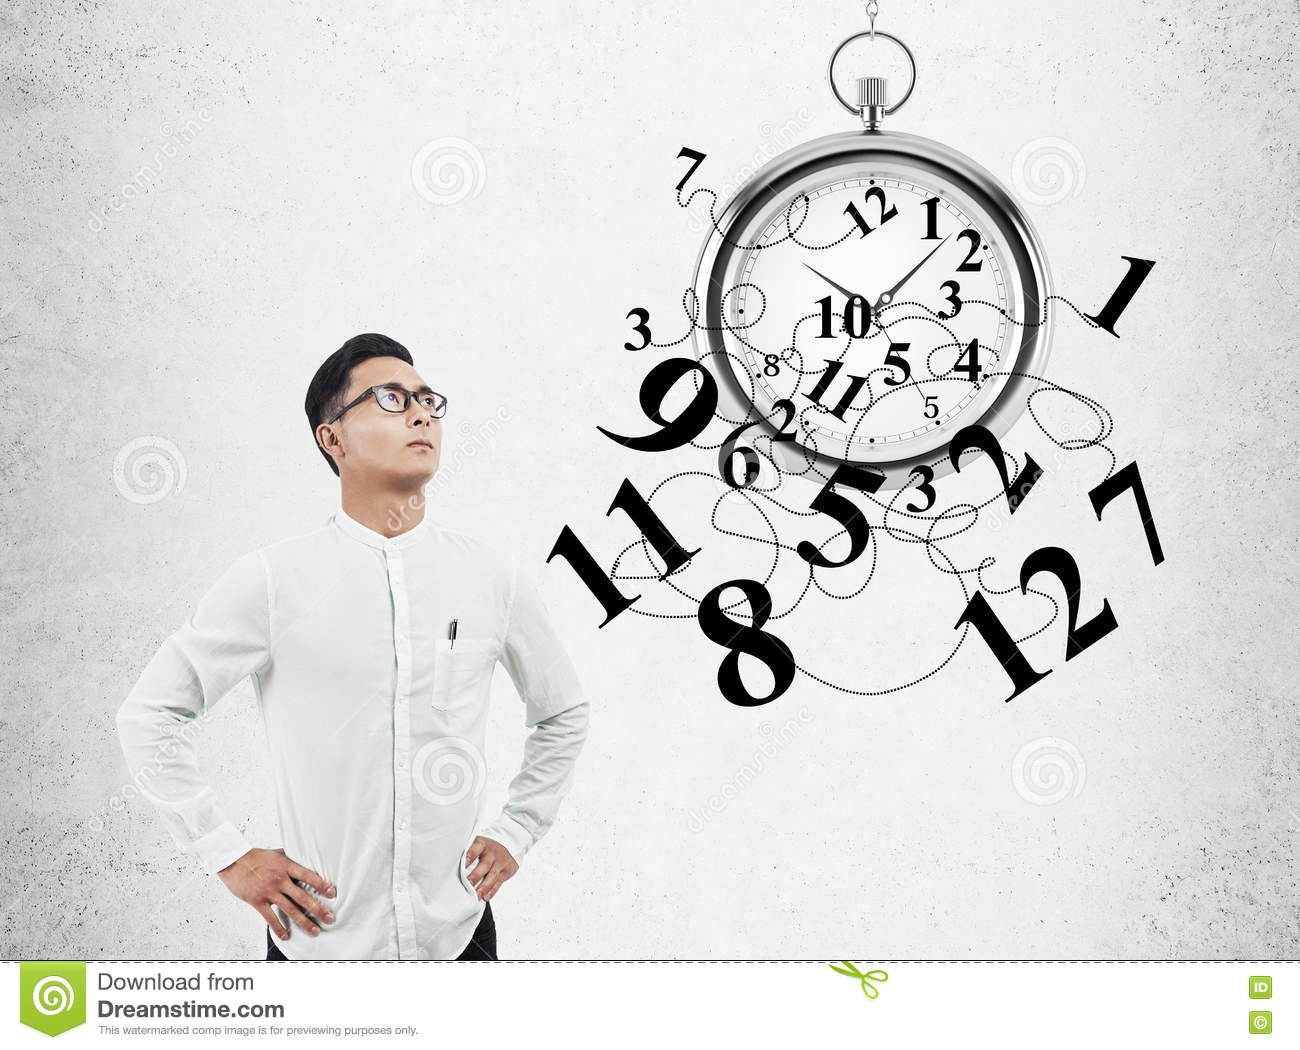 The Young Businessman Time Importance Concept Stock Photo ...